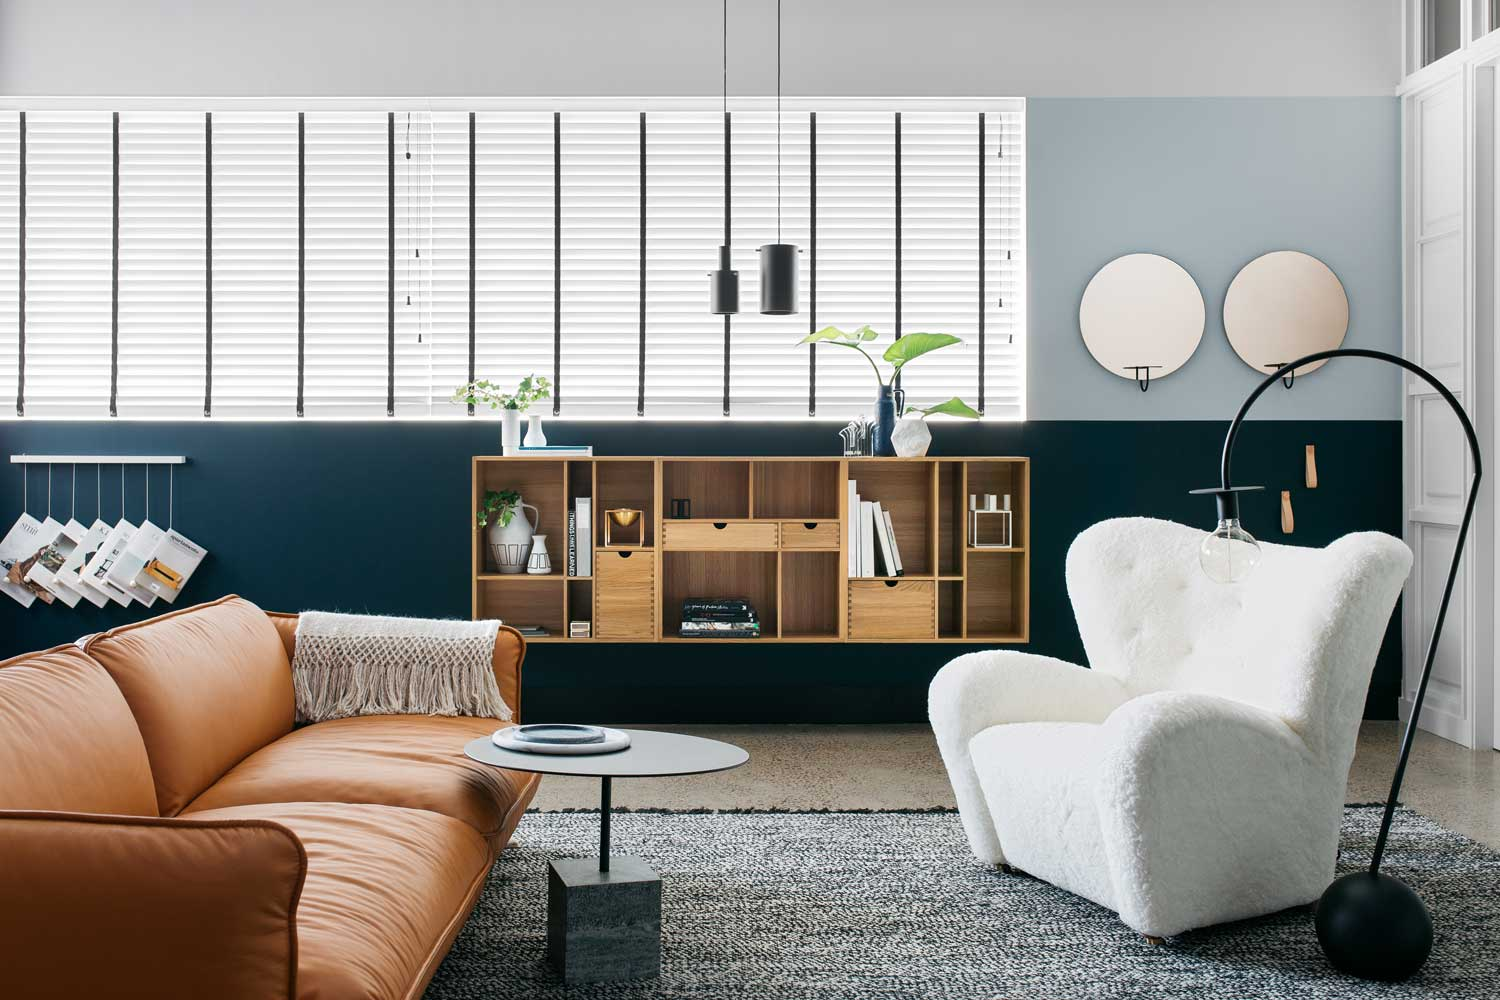 Scandinavian Furniture Emporium Fred International Has Reopened Its  Rosebery Showroom Following An Extensive Redesign That Re Imagines The  Space As Two ...